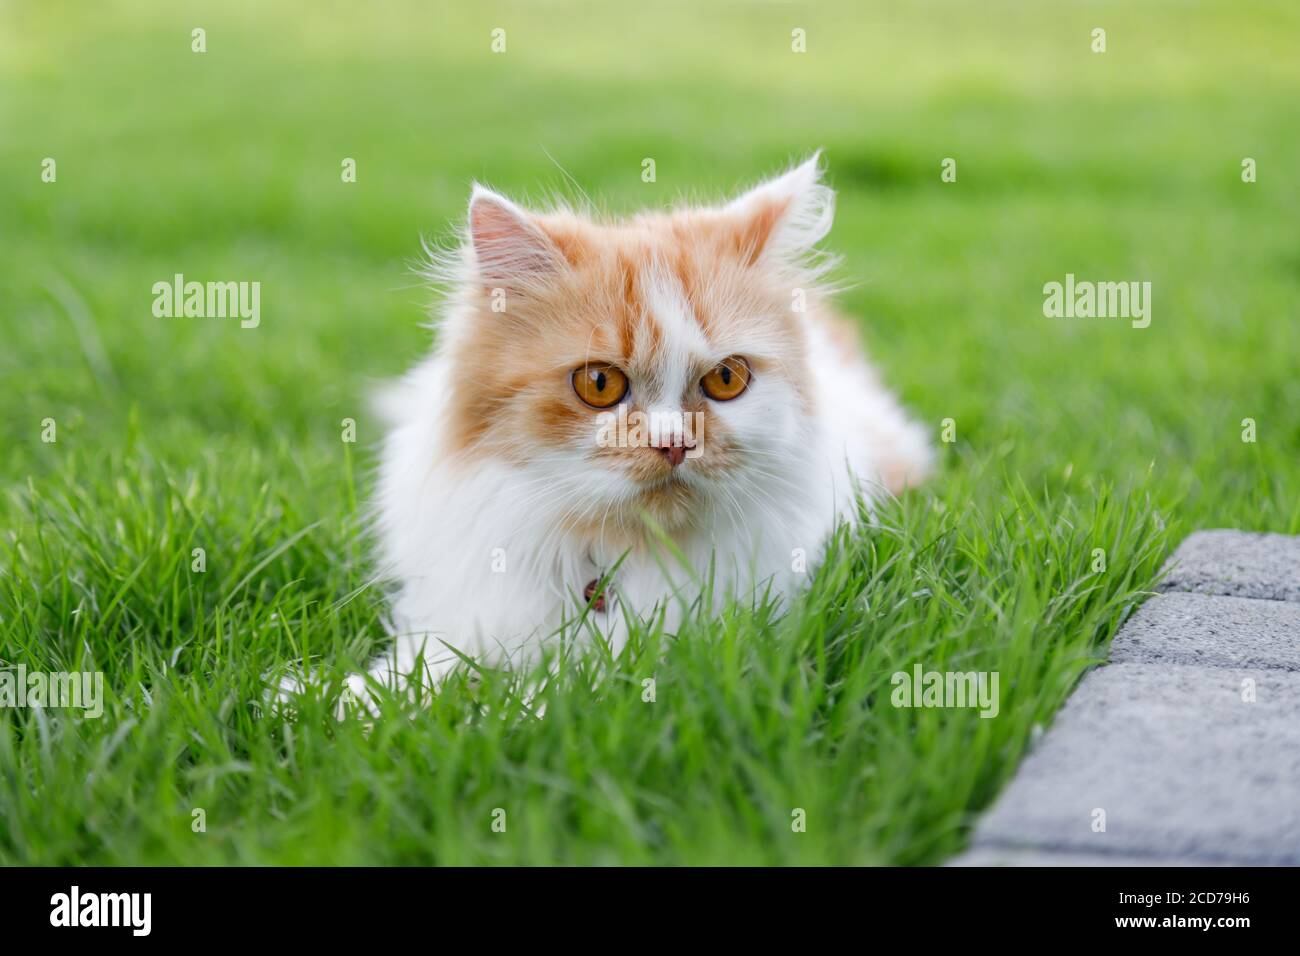 The cute Persian cat is sitting on a green grass field, and looking something, selective focus shallow depth of field Stock Photo